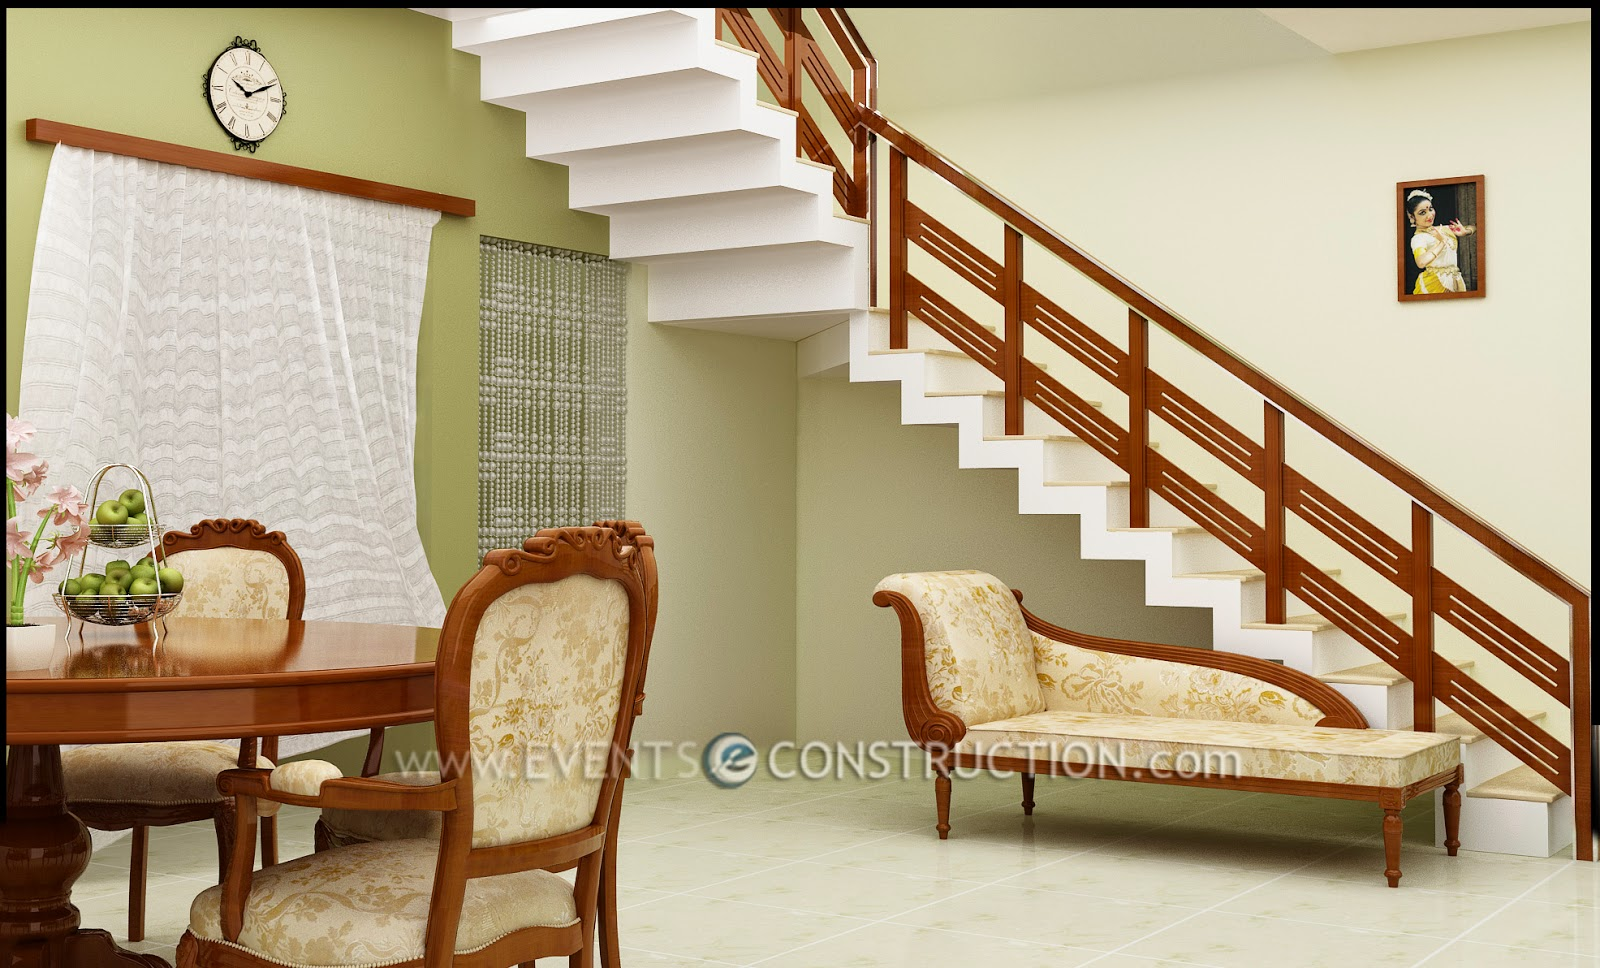 Wooden Staircase Railing Designs In Kerala Crowdbuild For